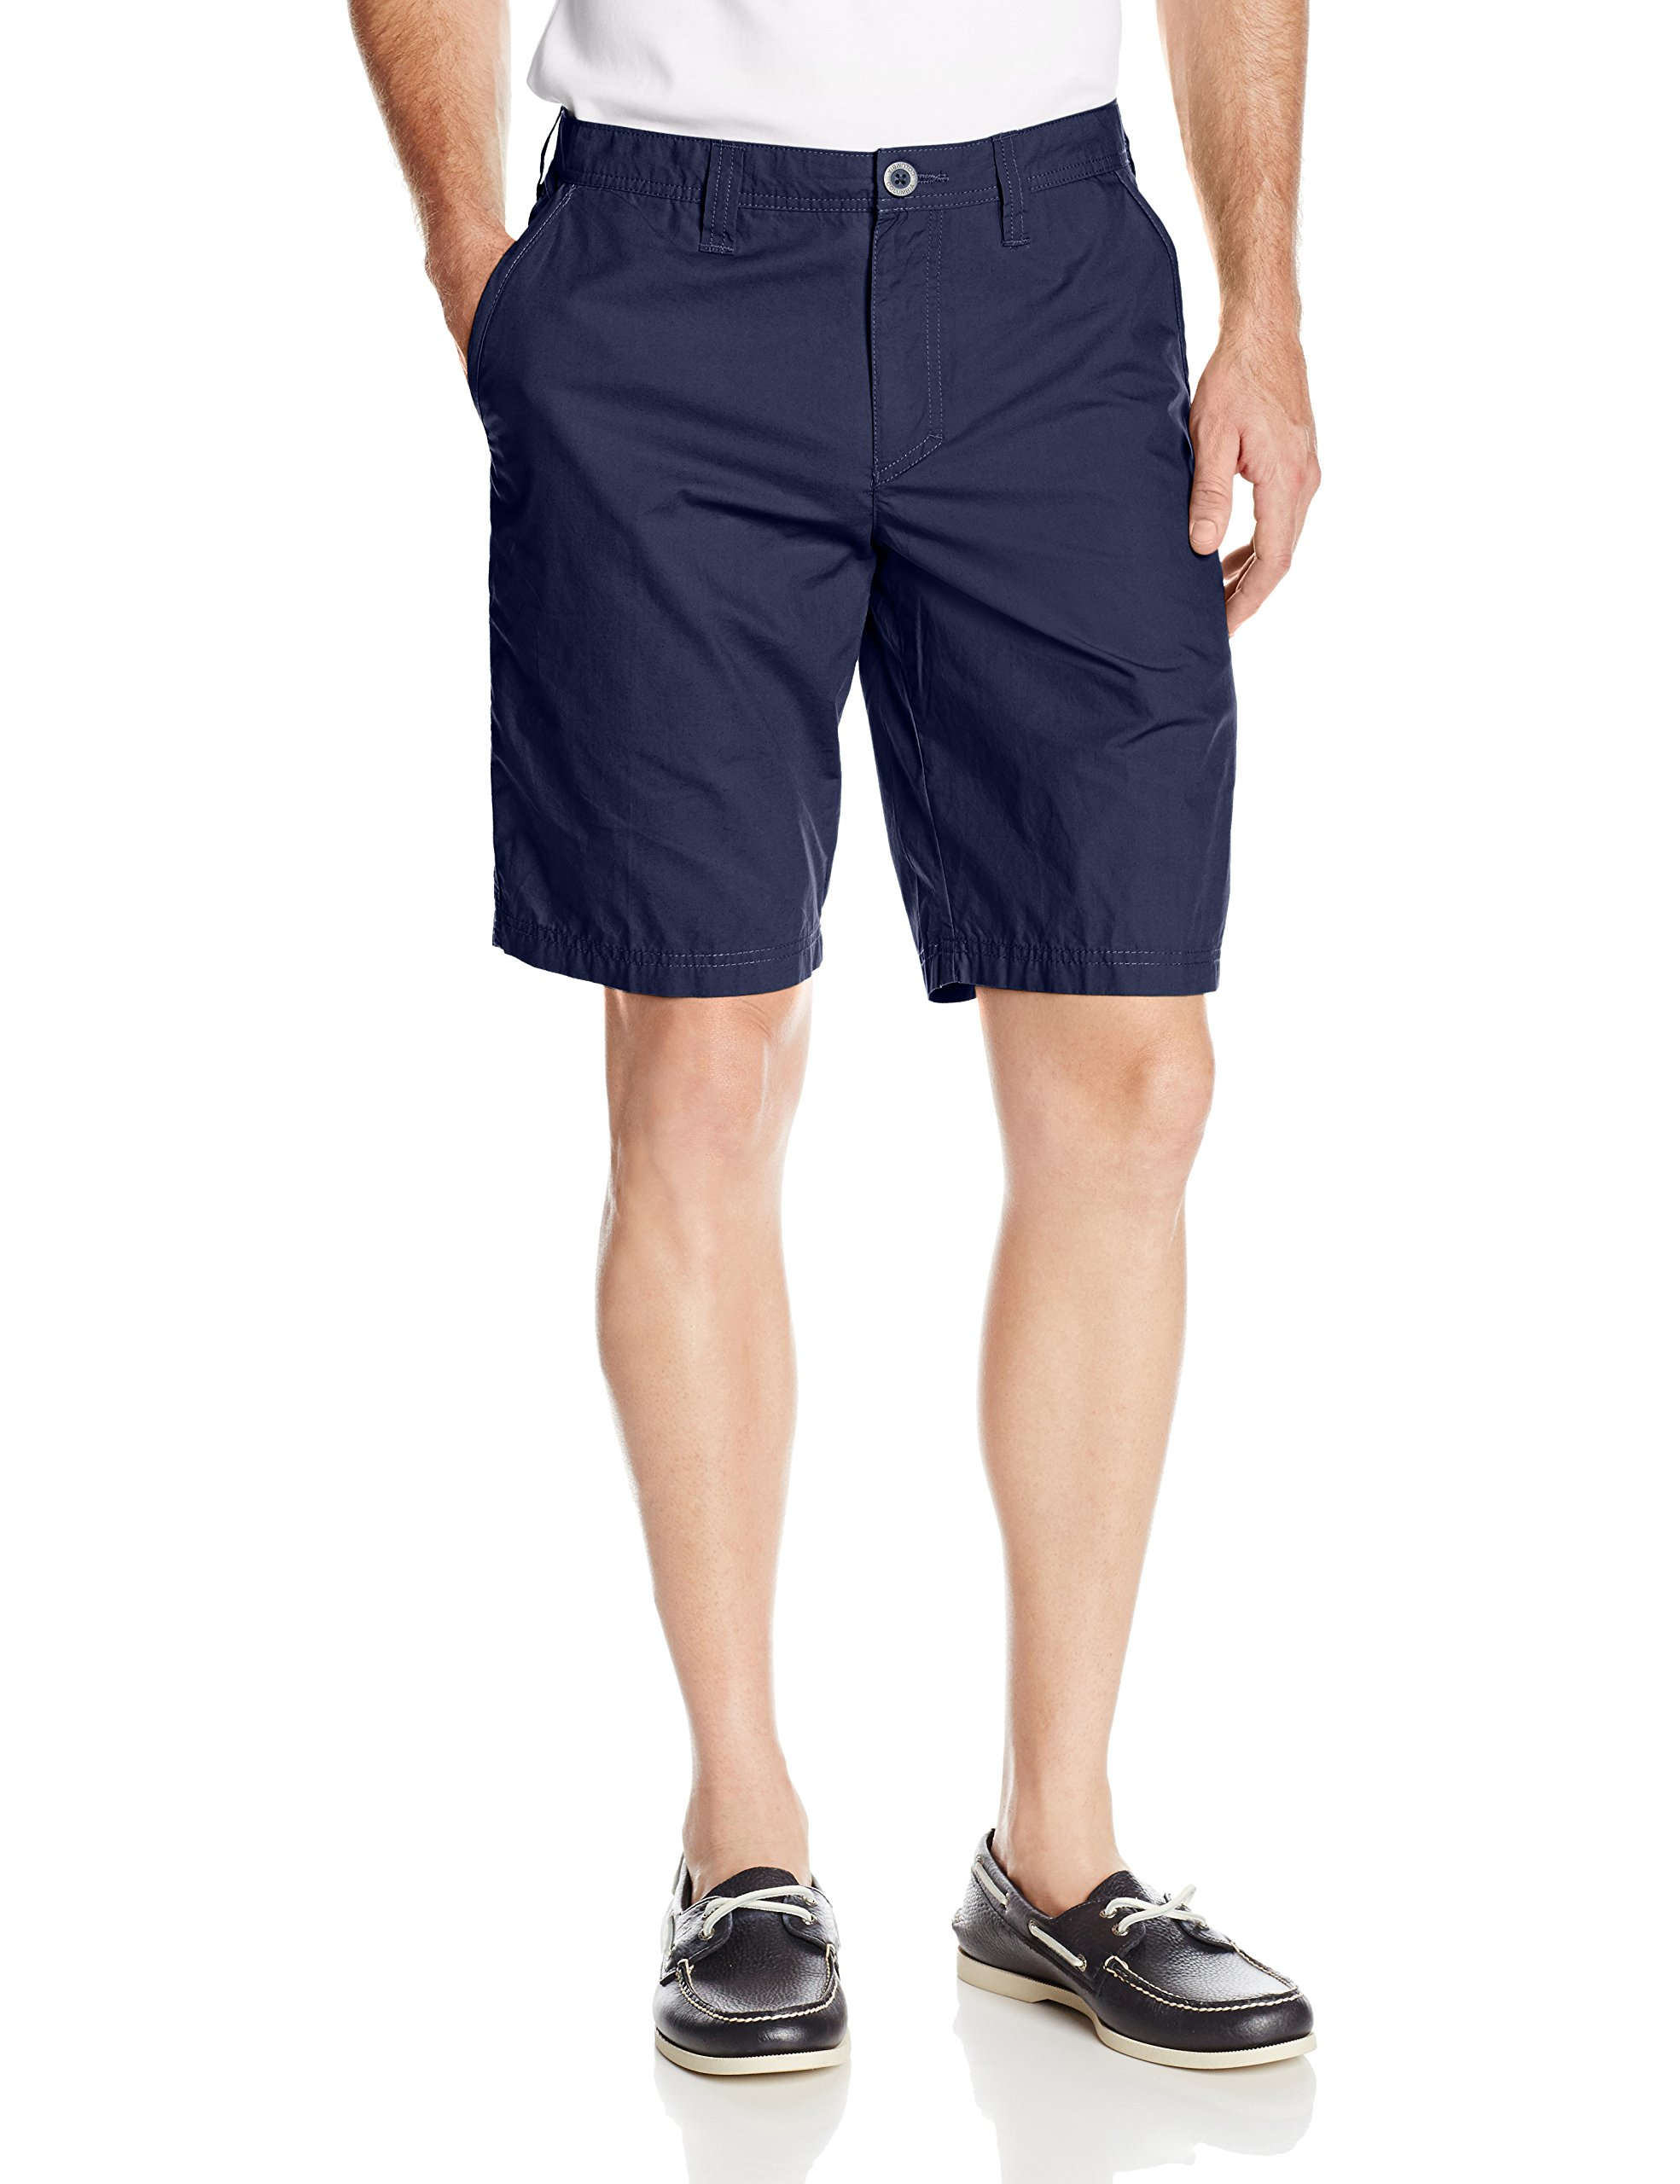 Columbia Men's Washed Out Chino Short, Collegiate Navy, 42x10 by Columbia